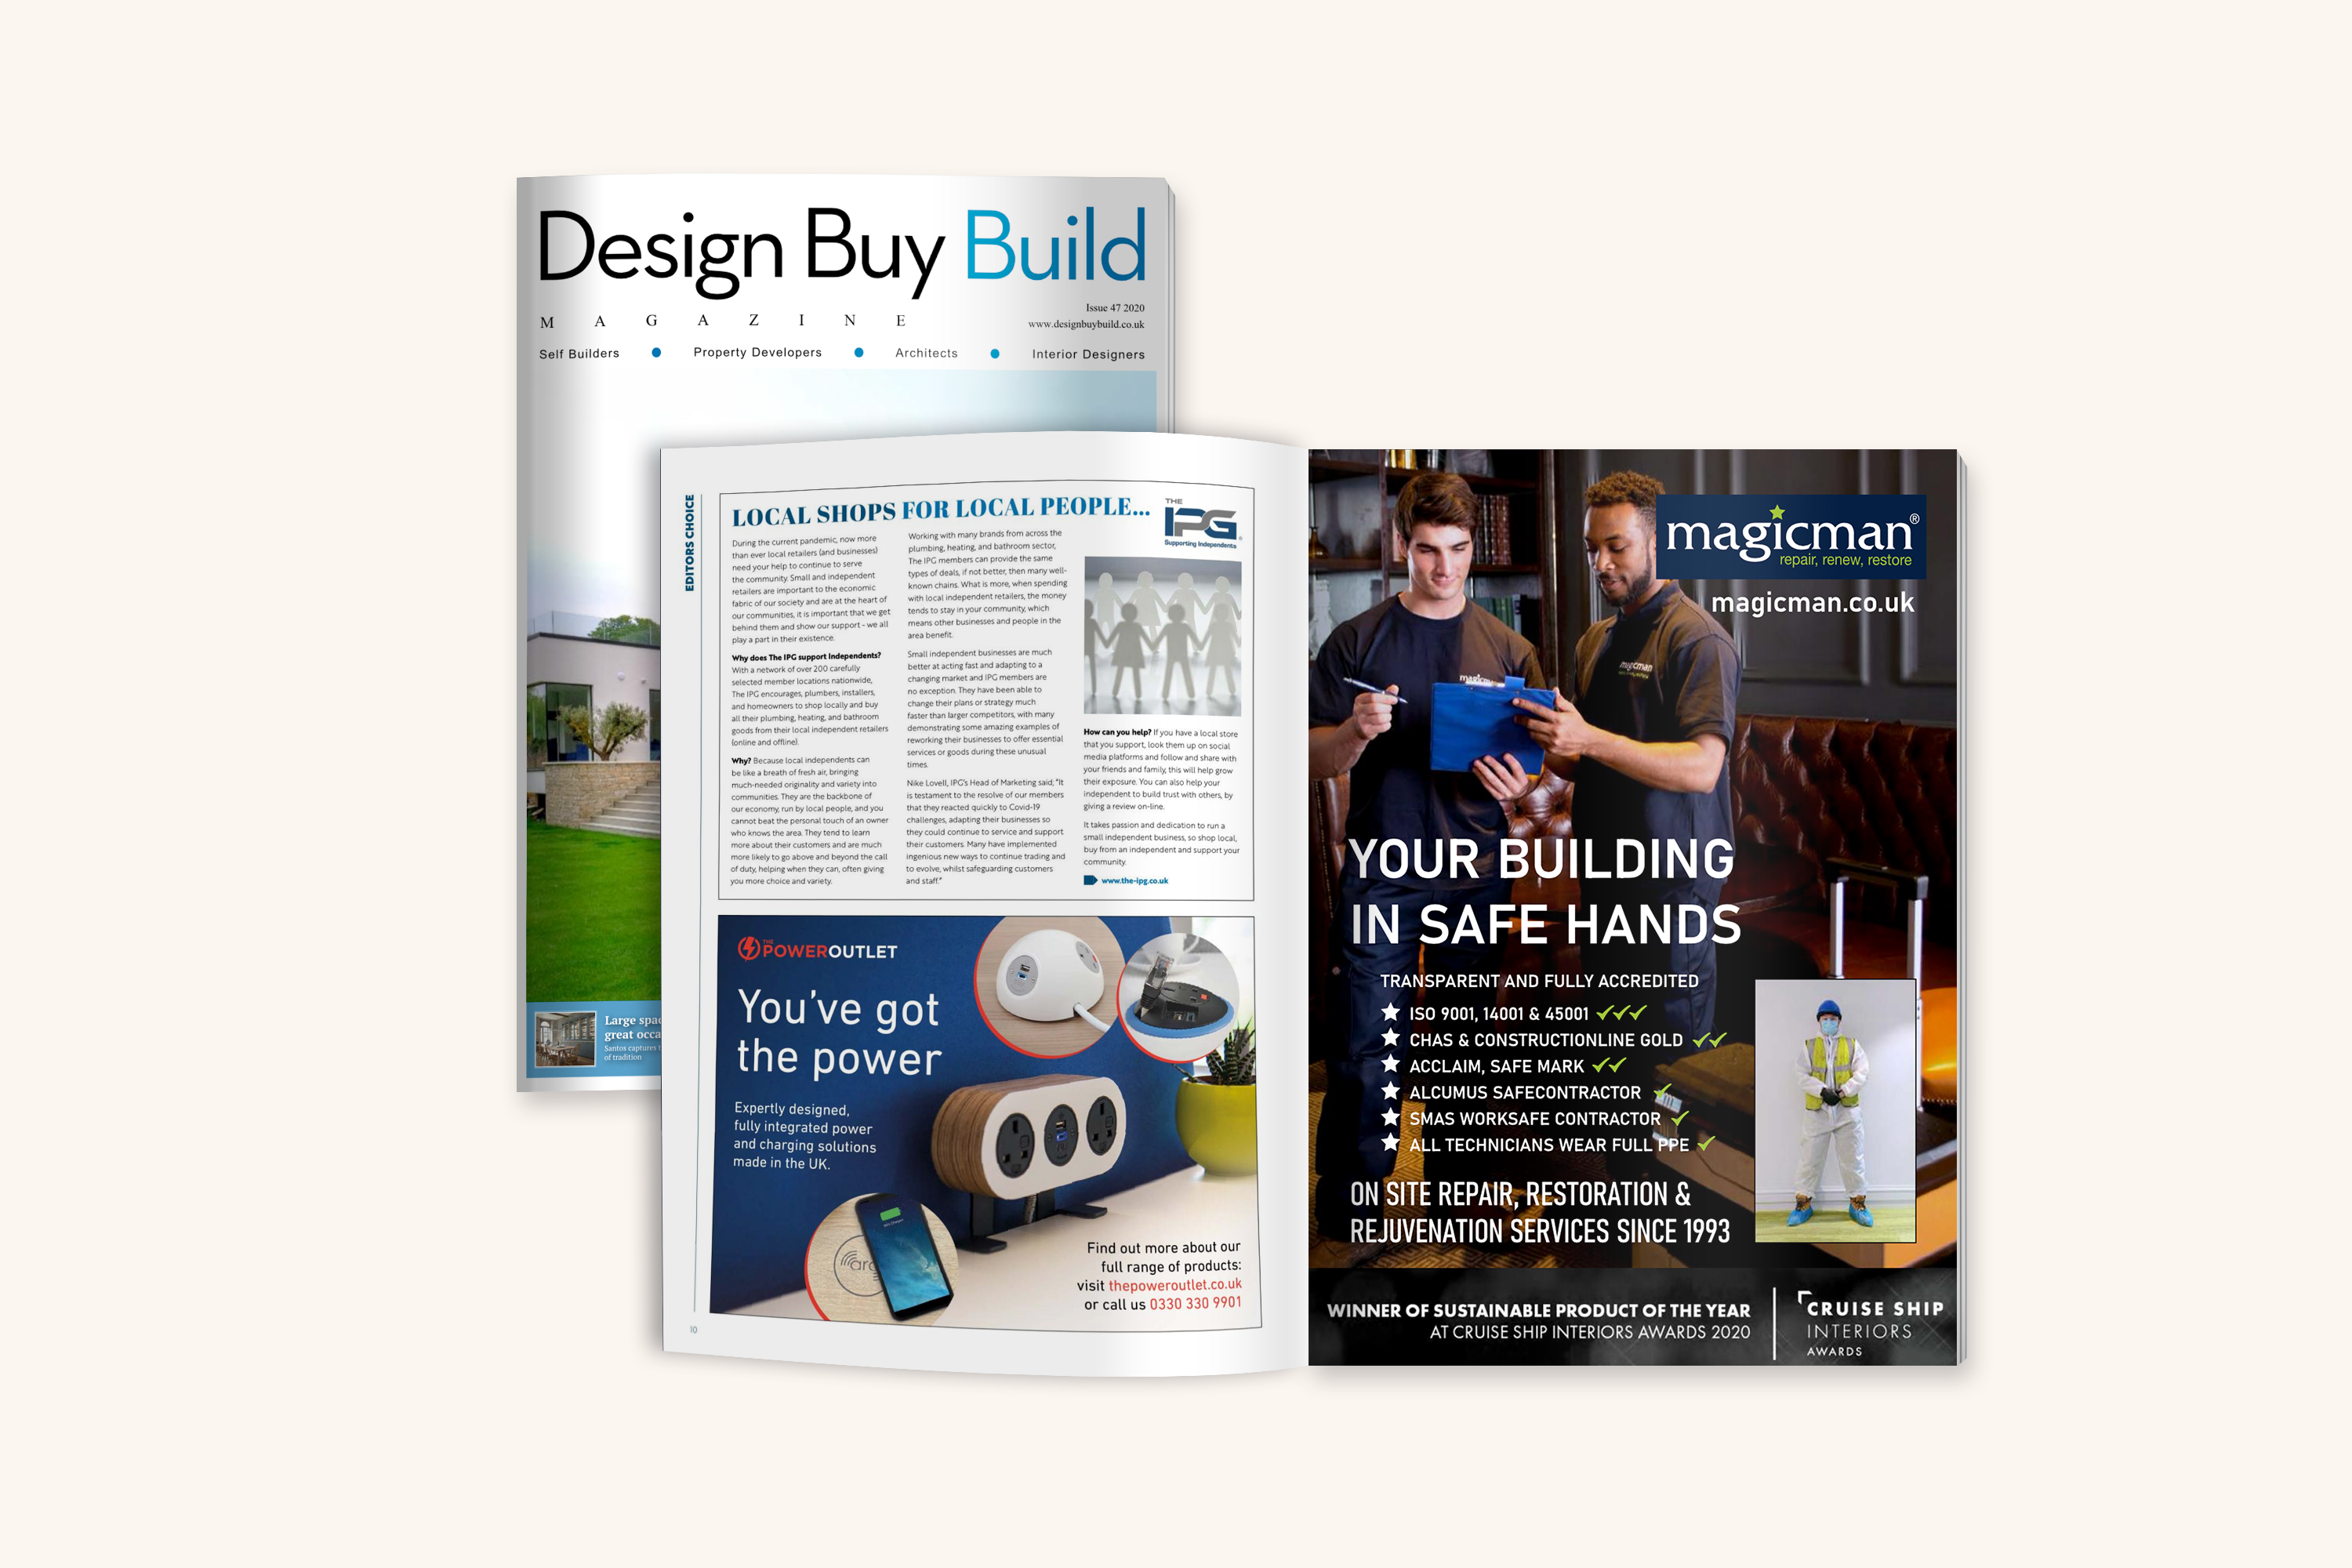 The Power Outlet - Design buy build magazine advert